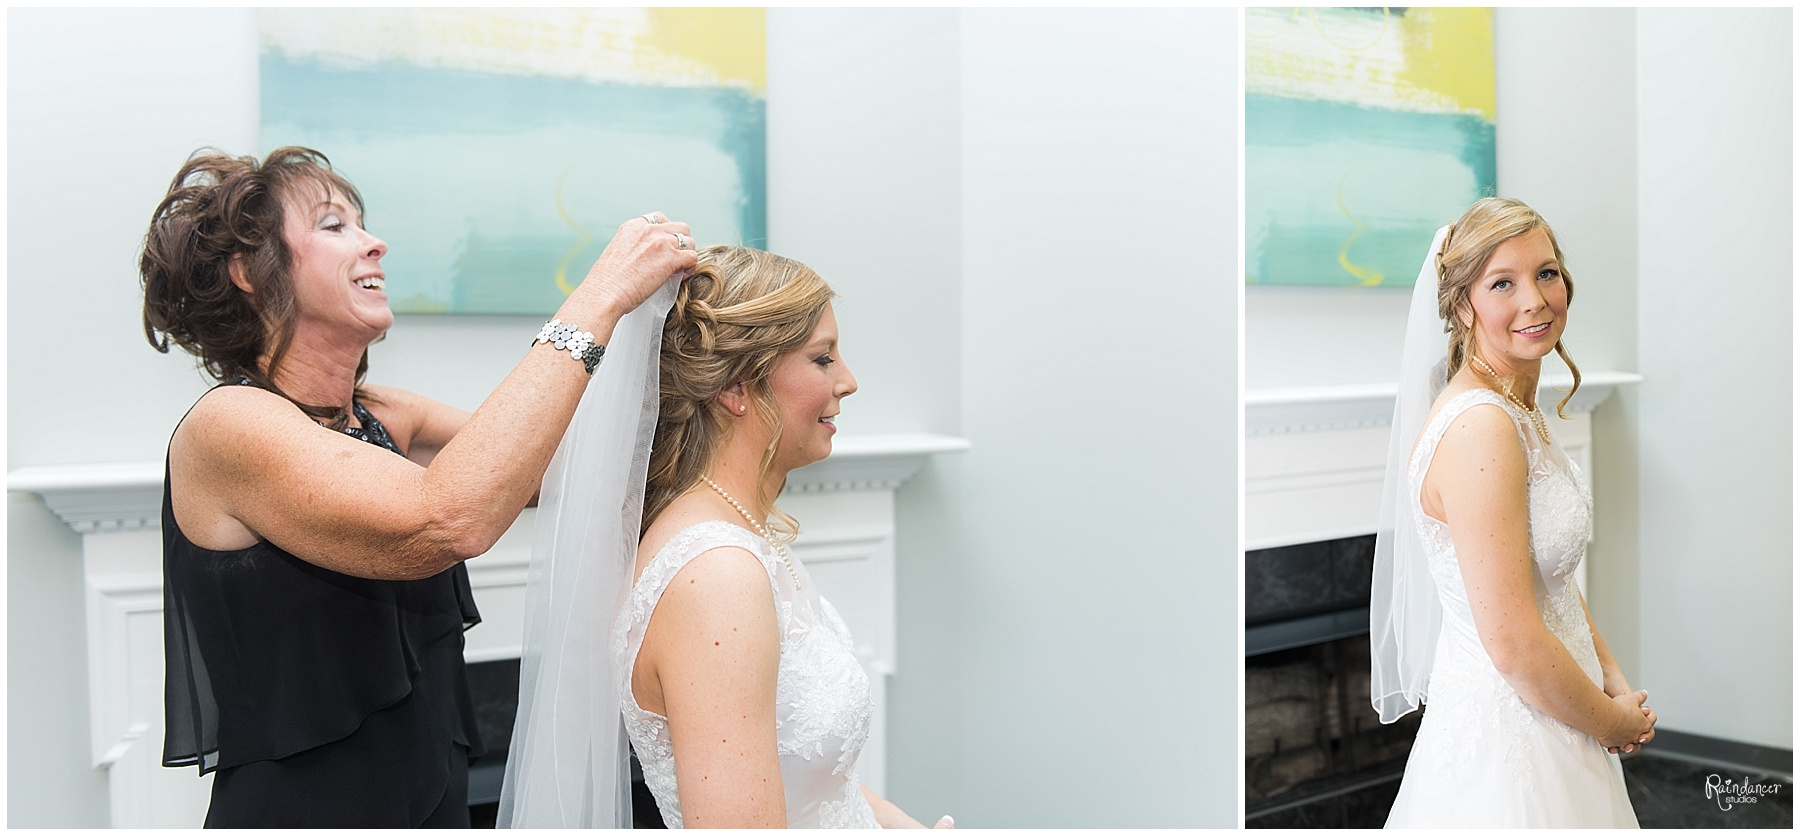 Mother of the groom putting brides veil on her by Raindancer Studios Indianapolis Wedding Photographer Jill Howell